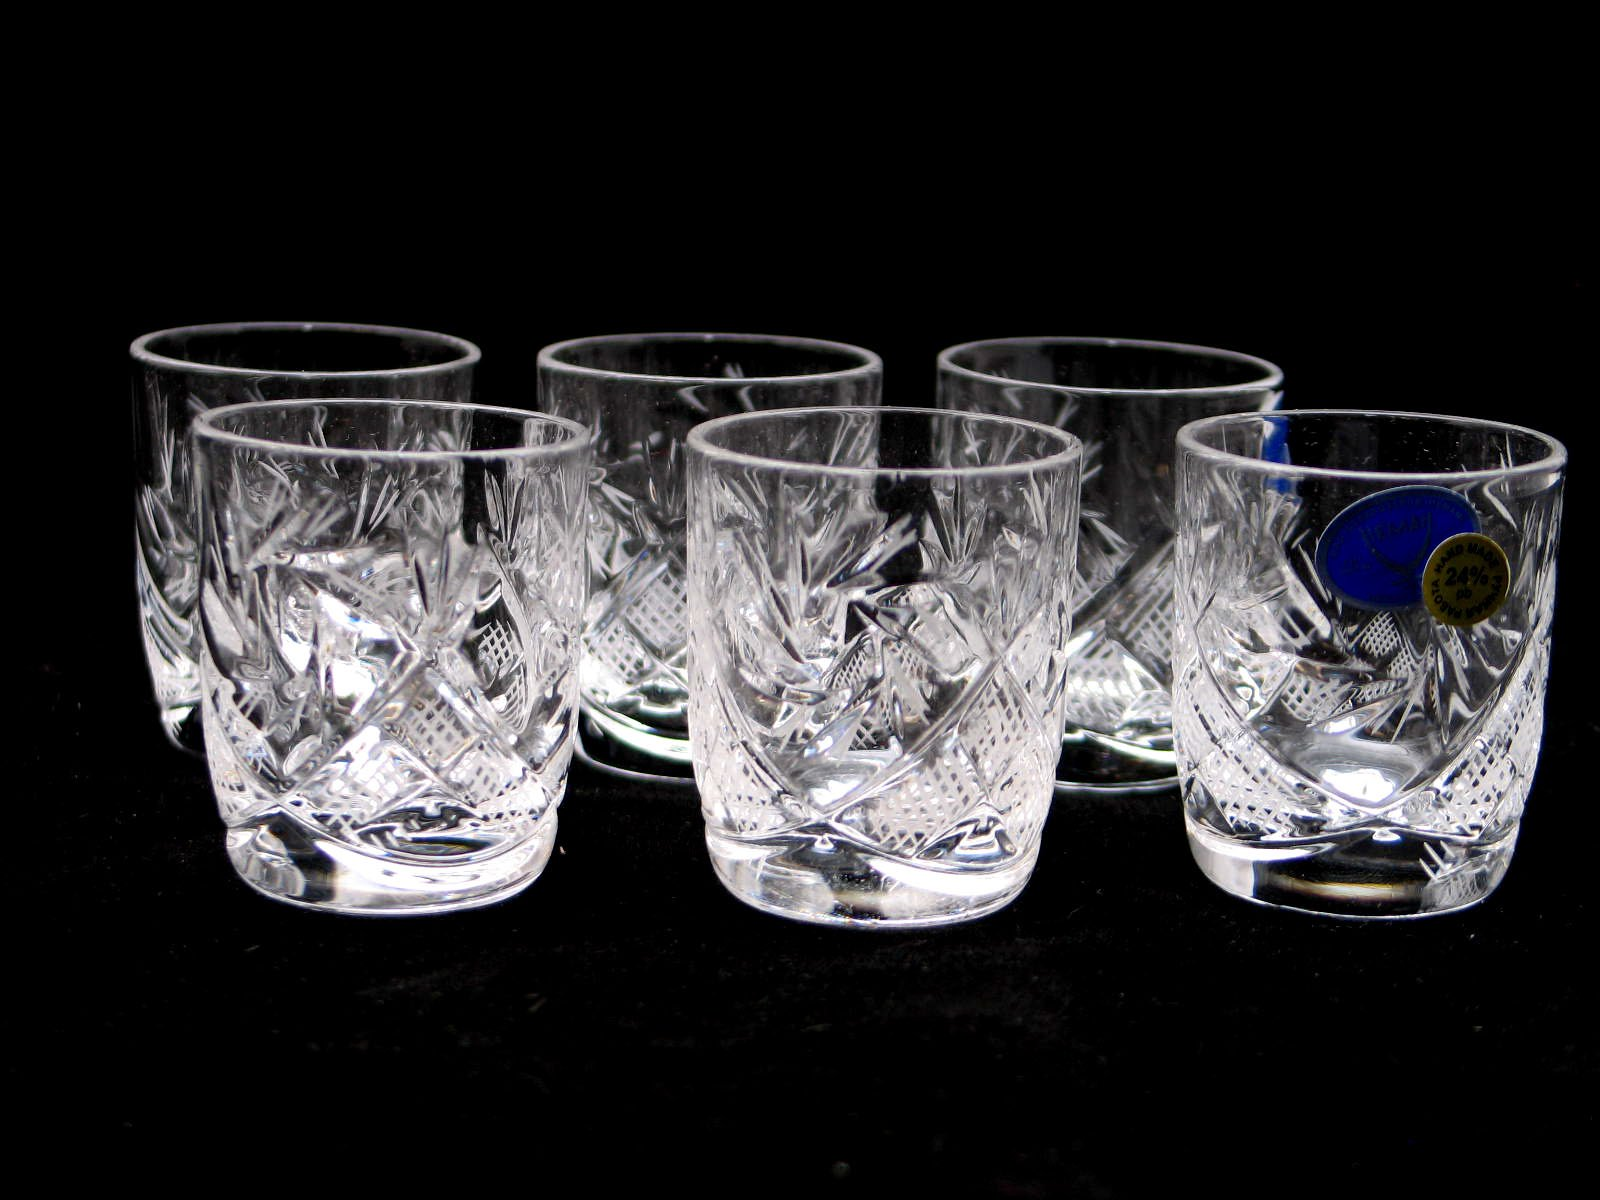 SET of 6 Russian Vintage CUT Crystal Stemless Shot Vodka Glasses 1.5 Oz / 50 ml, Old-fashioned Handmade European Crystal…